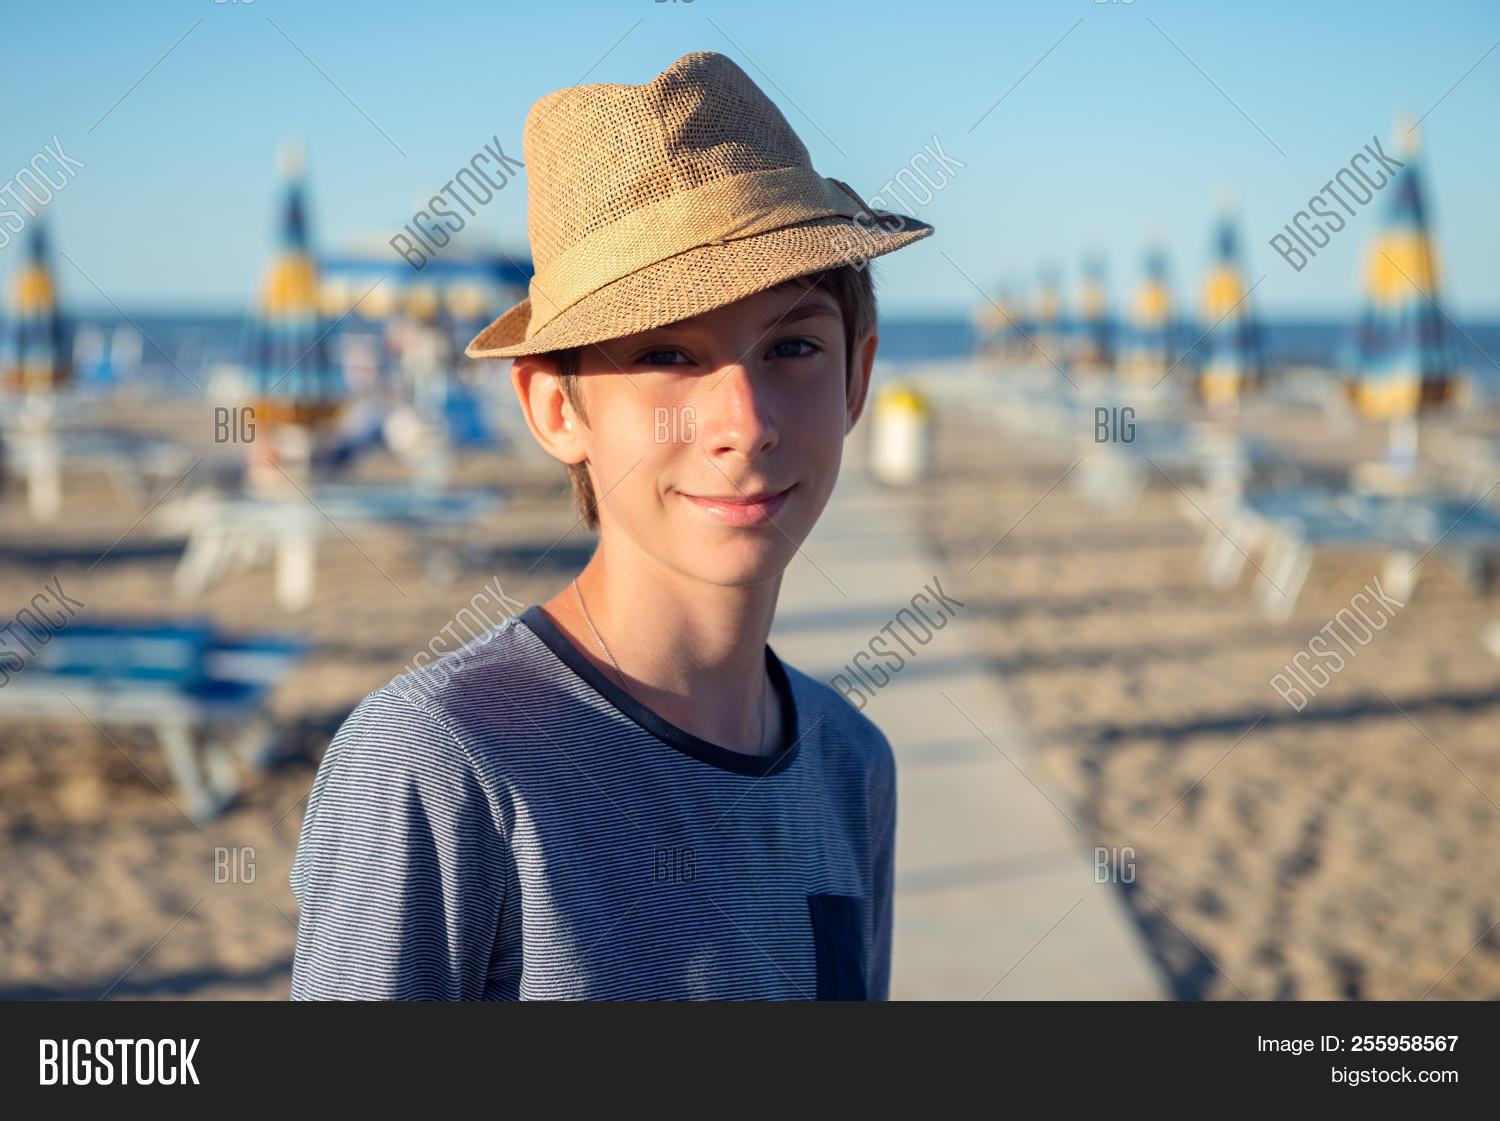 Young Boy Hat Posing Image Photo Free Trial Bigstock